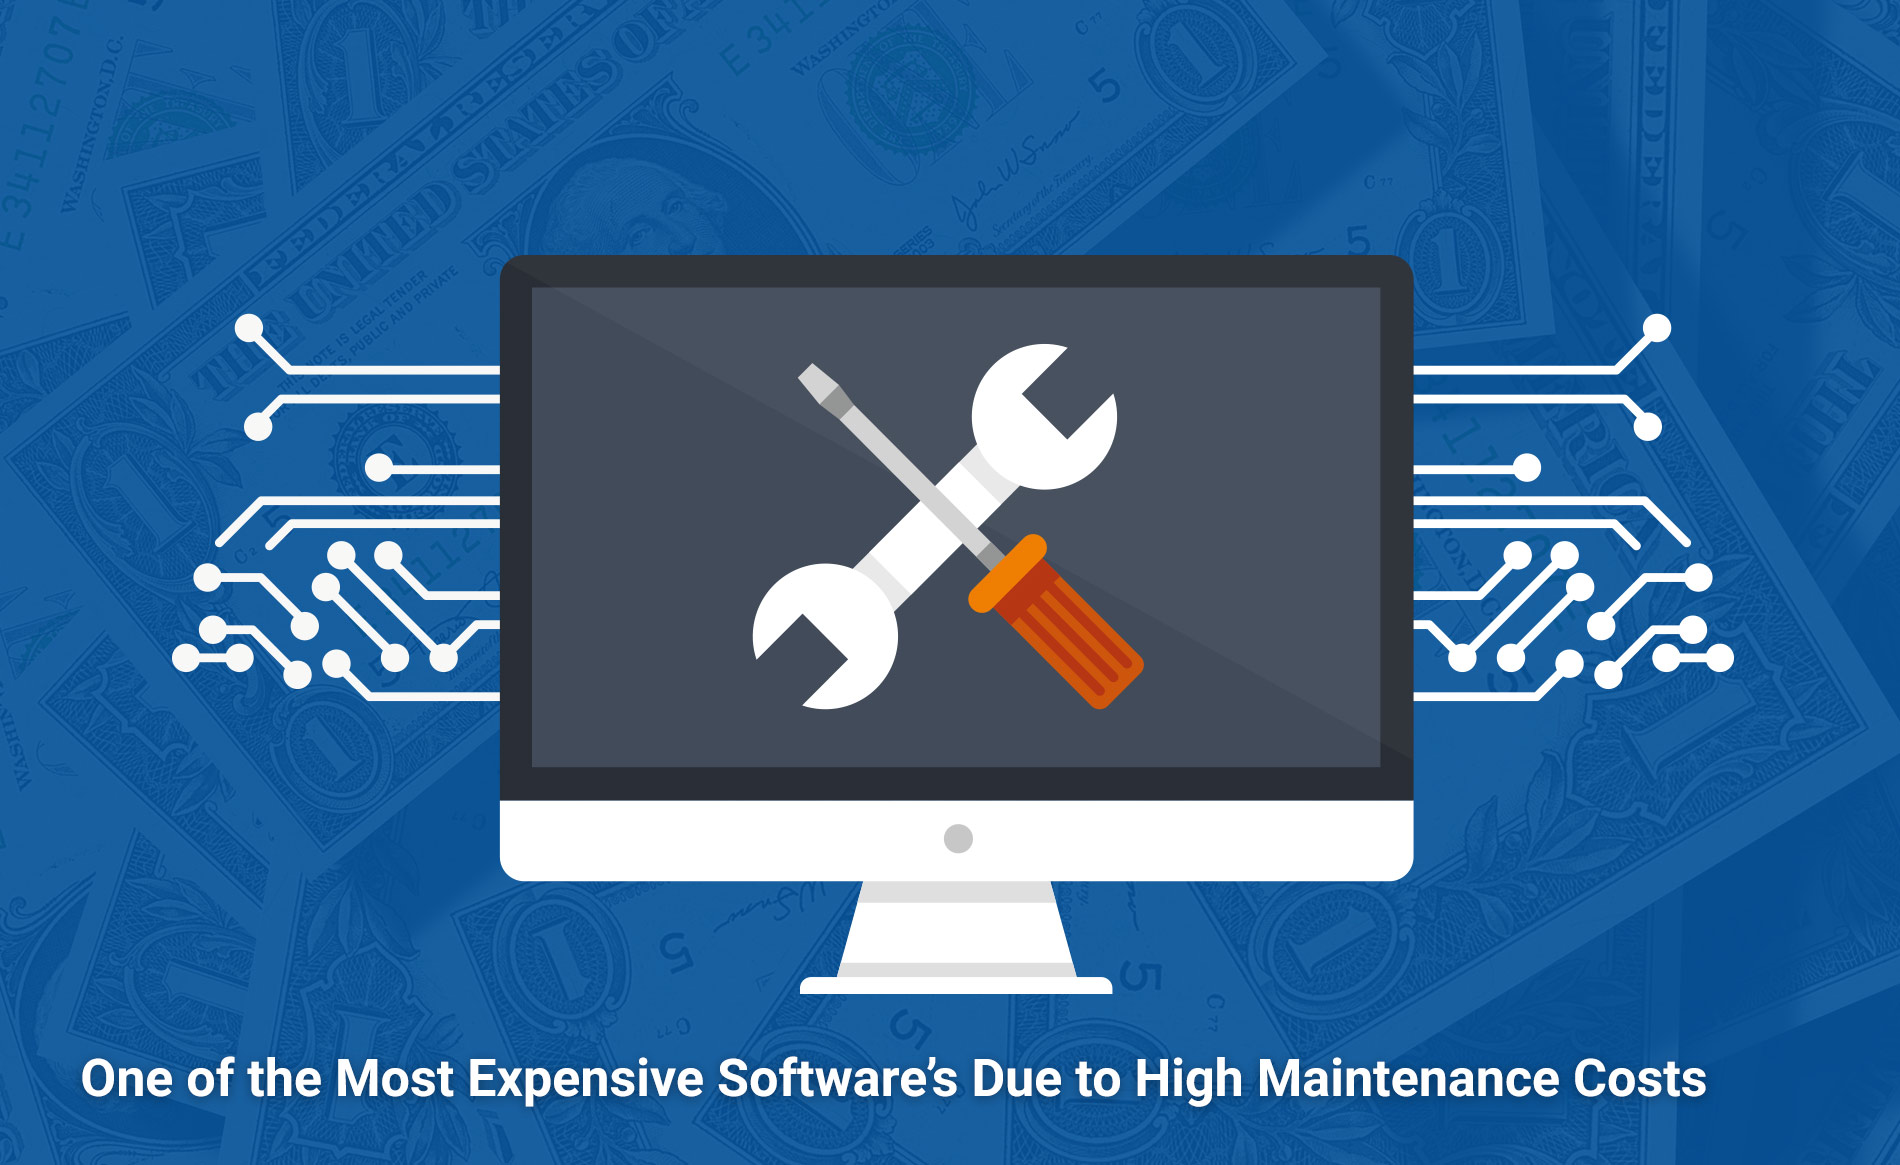 One of the Most Expensive Softwares Due to High Maintenance Costs